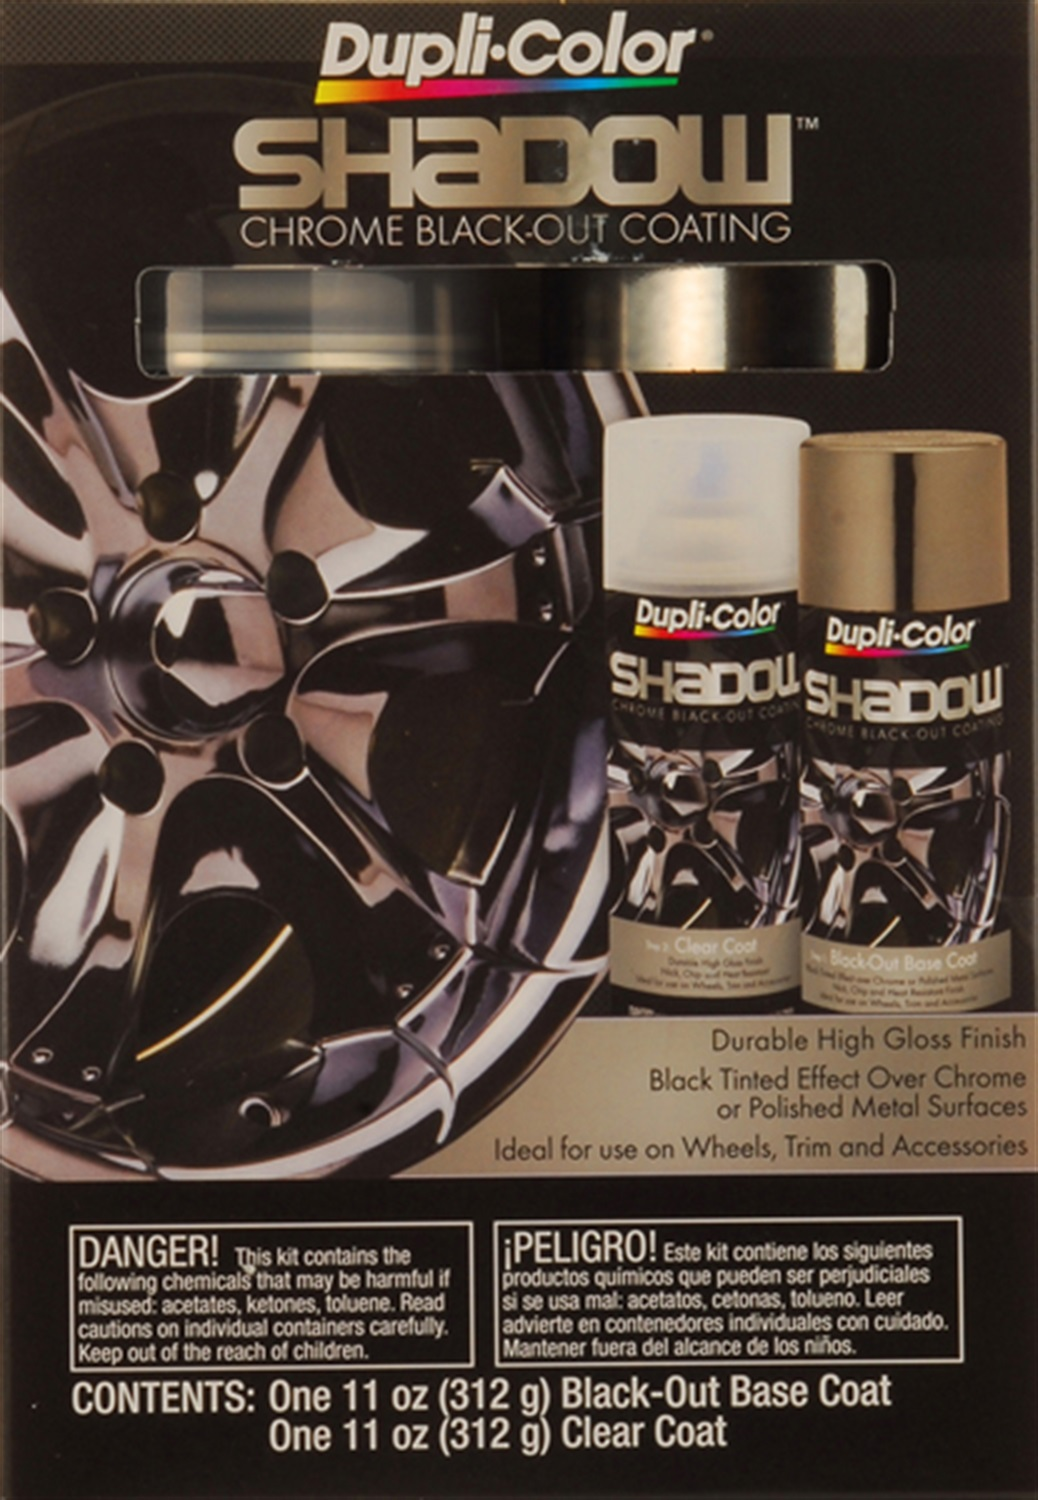 Dupli color paint shd1000 shadow chrome black out coating - How to get exterior paint out of clothes ...